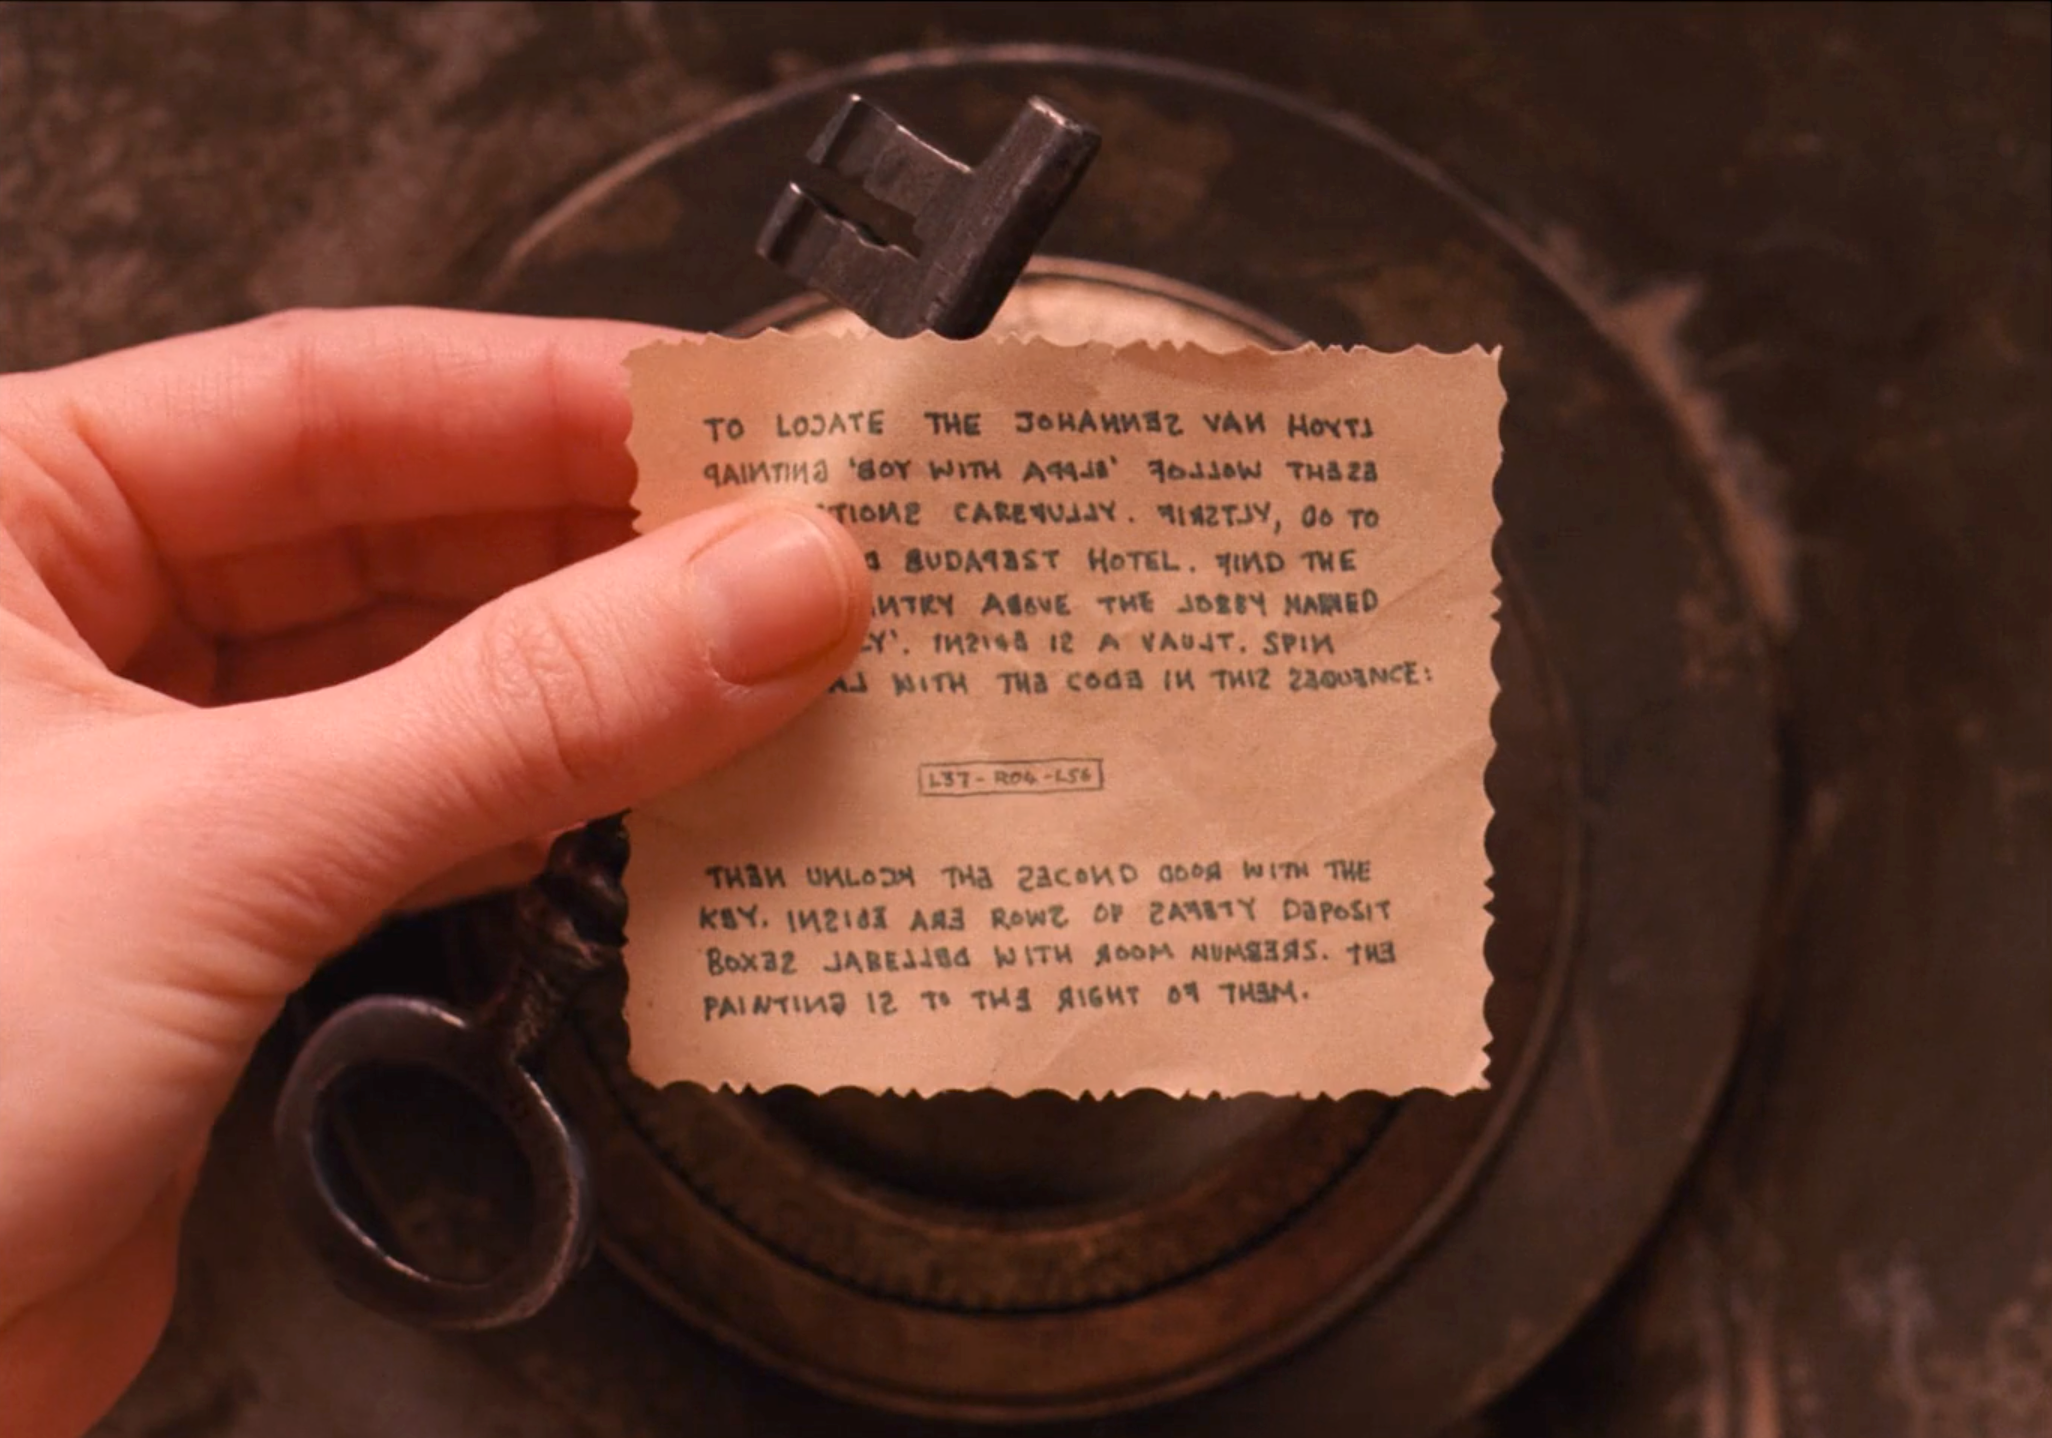 Props: Key and Little Message